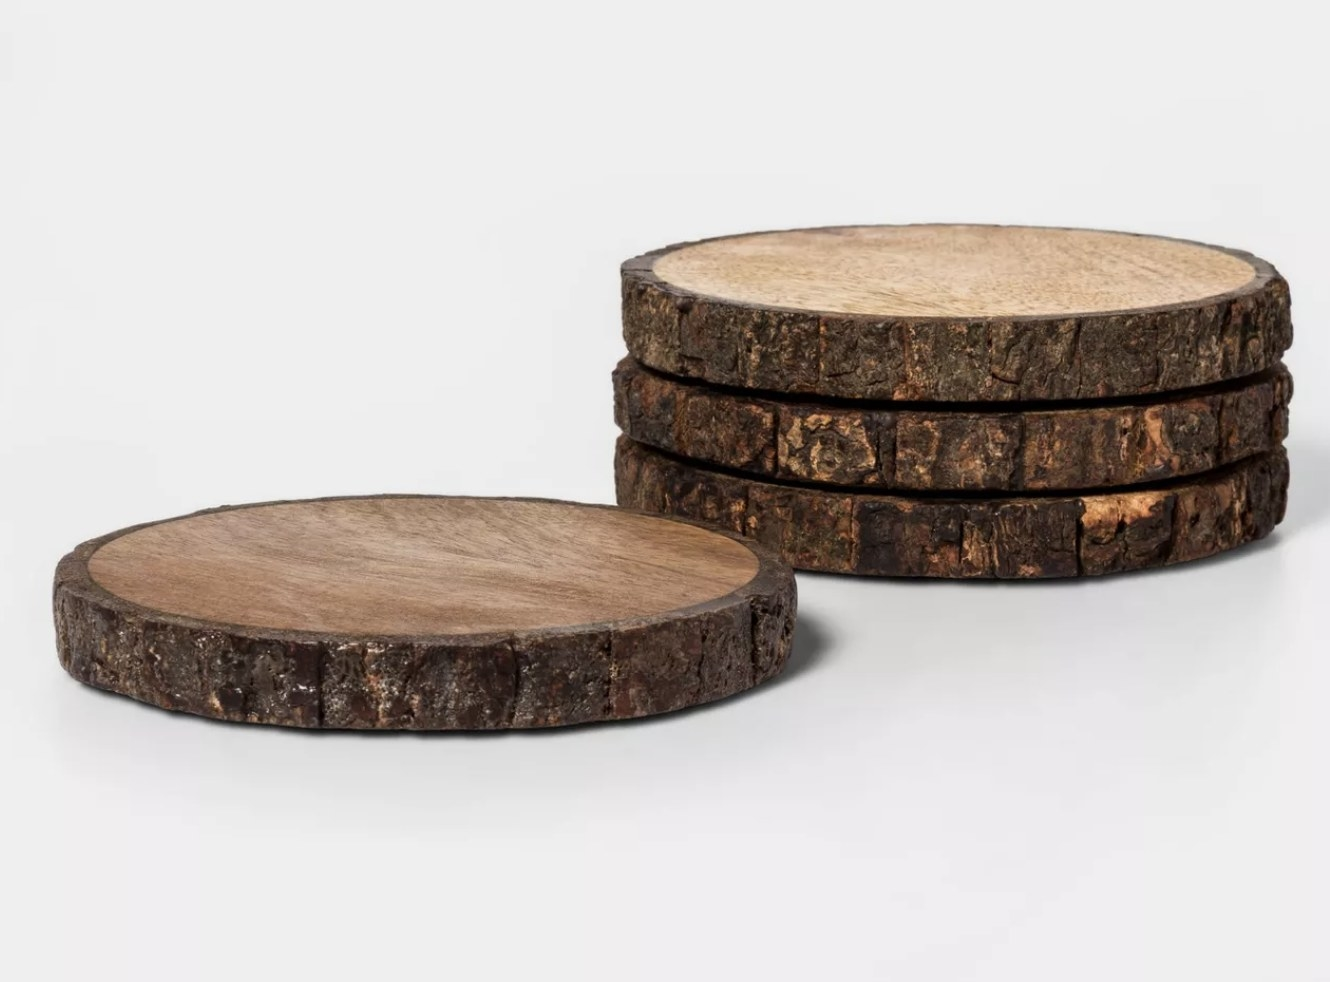 Four coasters that look like they were carved from a tree